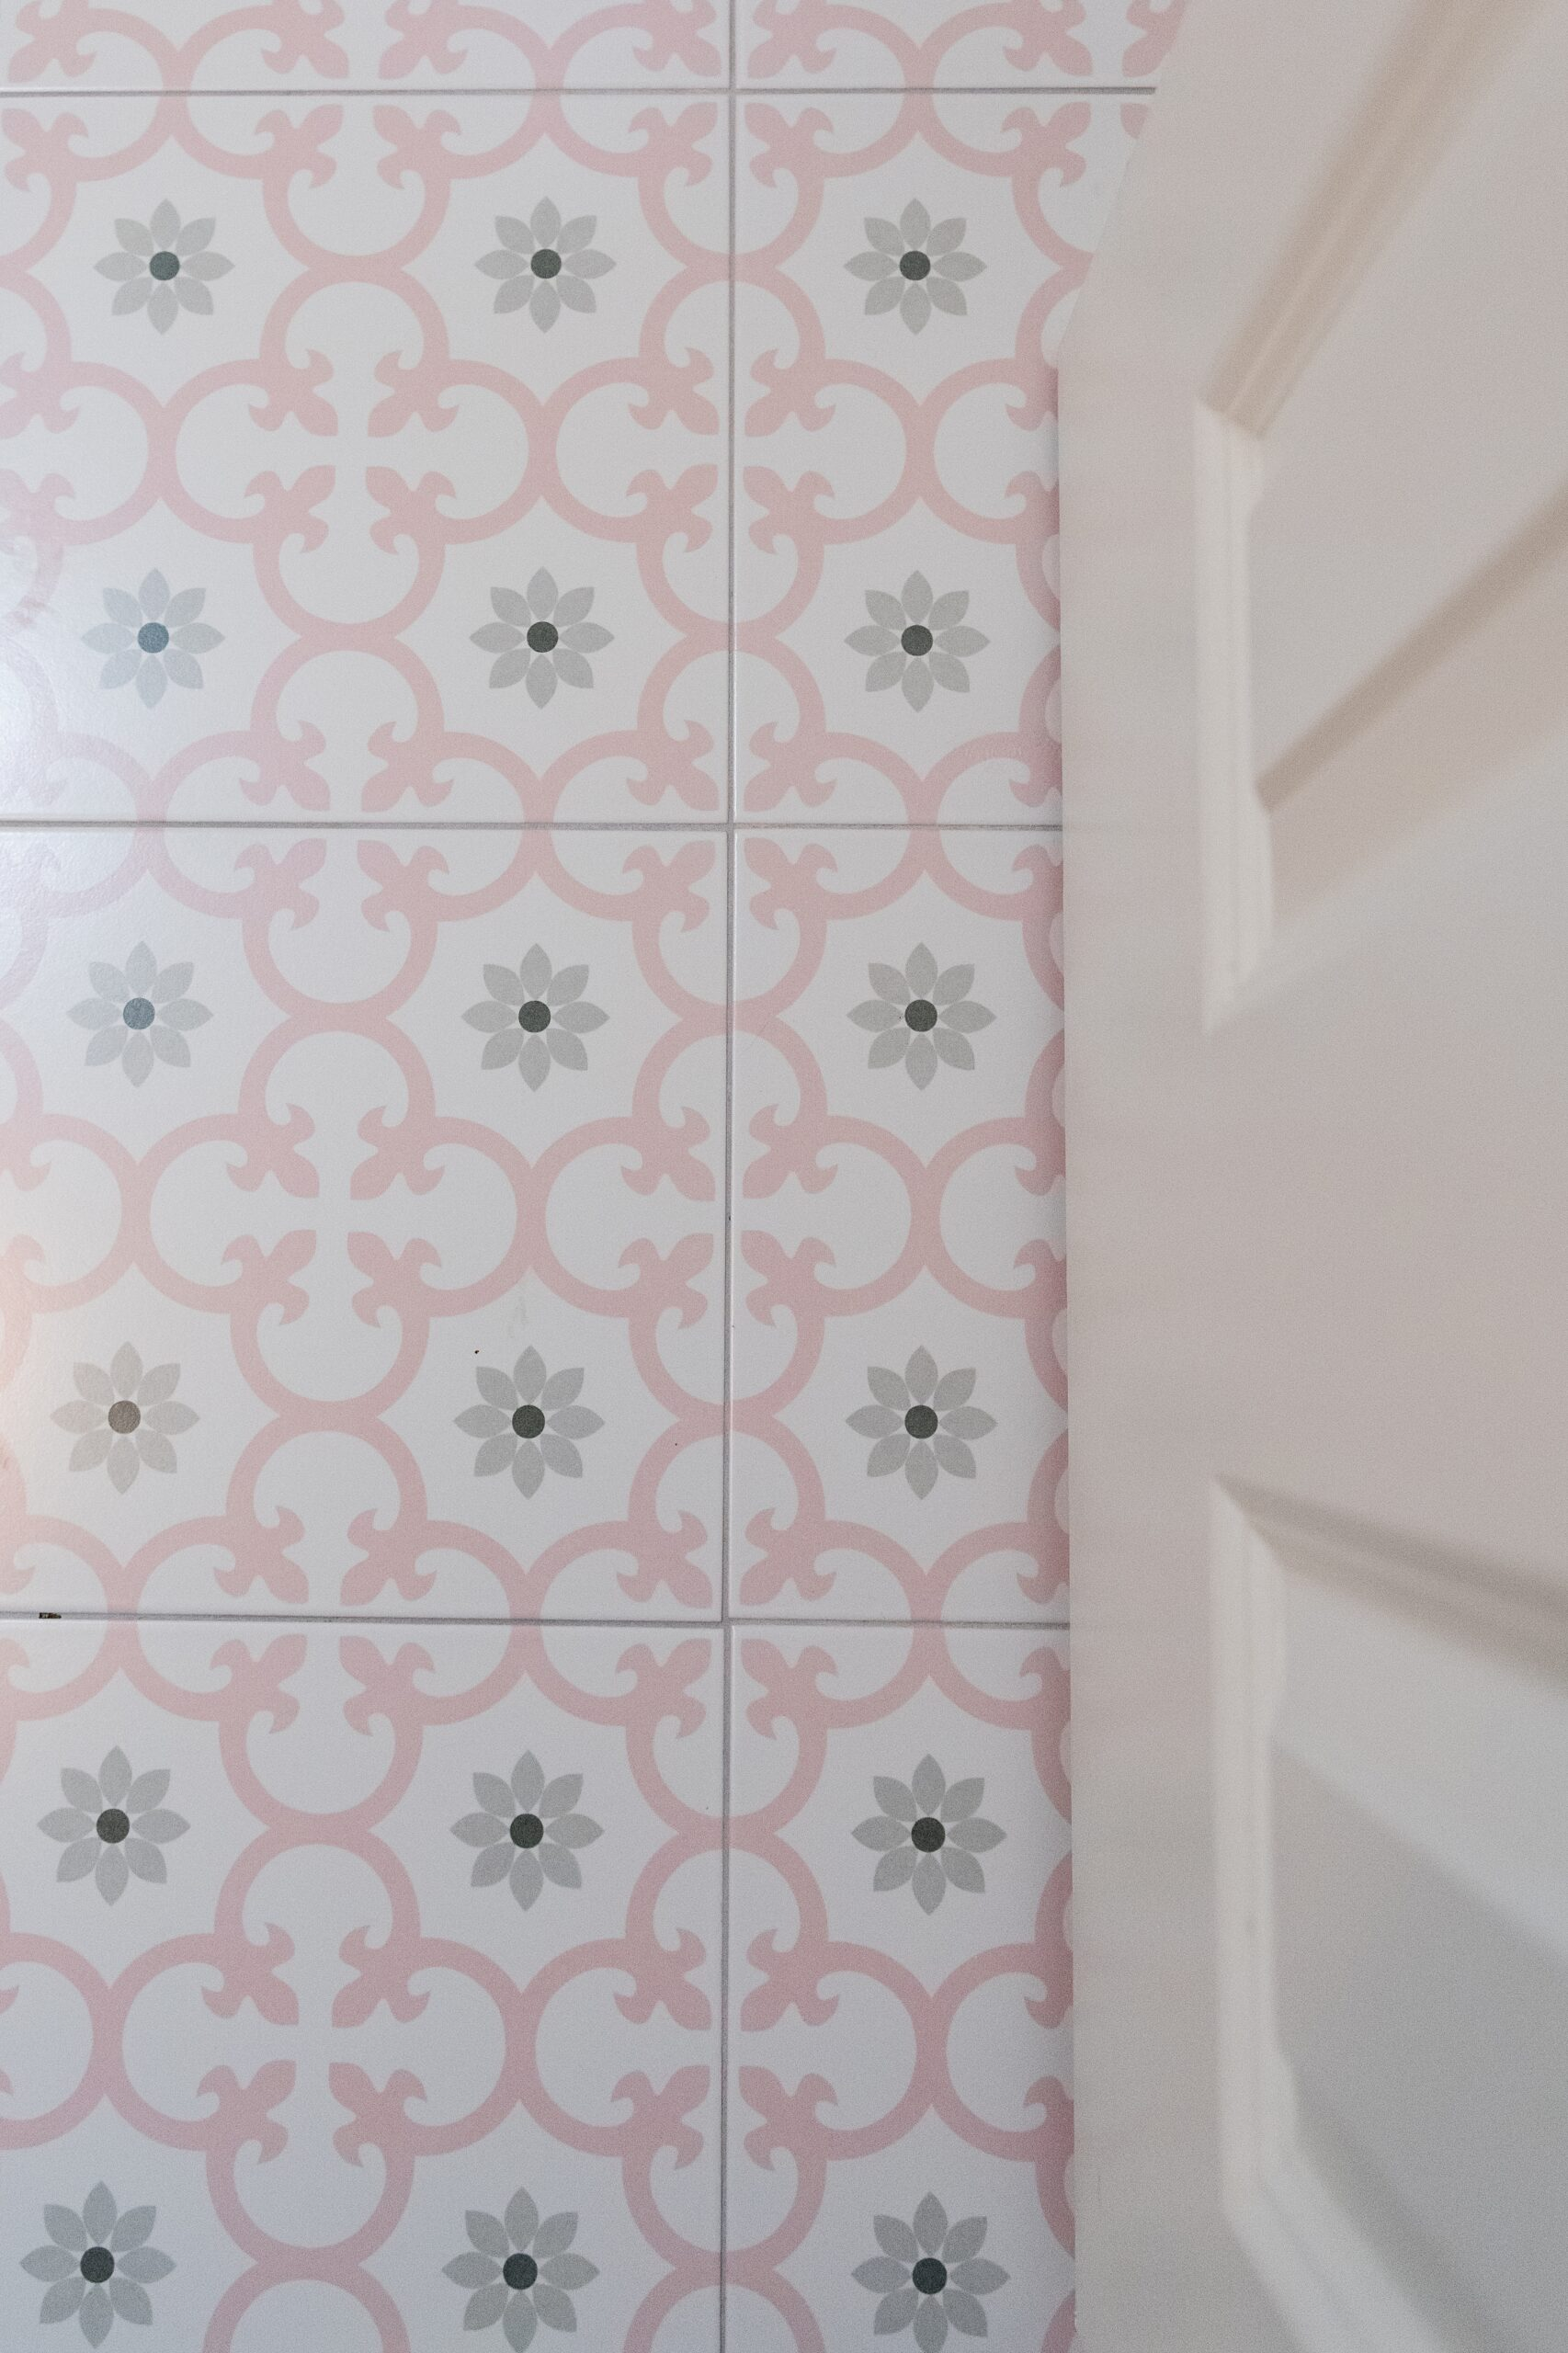 Girls Bathroom by popular Houston life and style blog, Fancy Ashley: image of a bathroom pink and grey tile flooring.